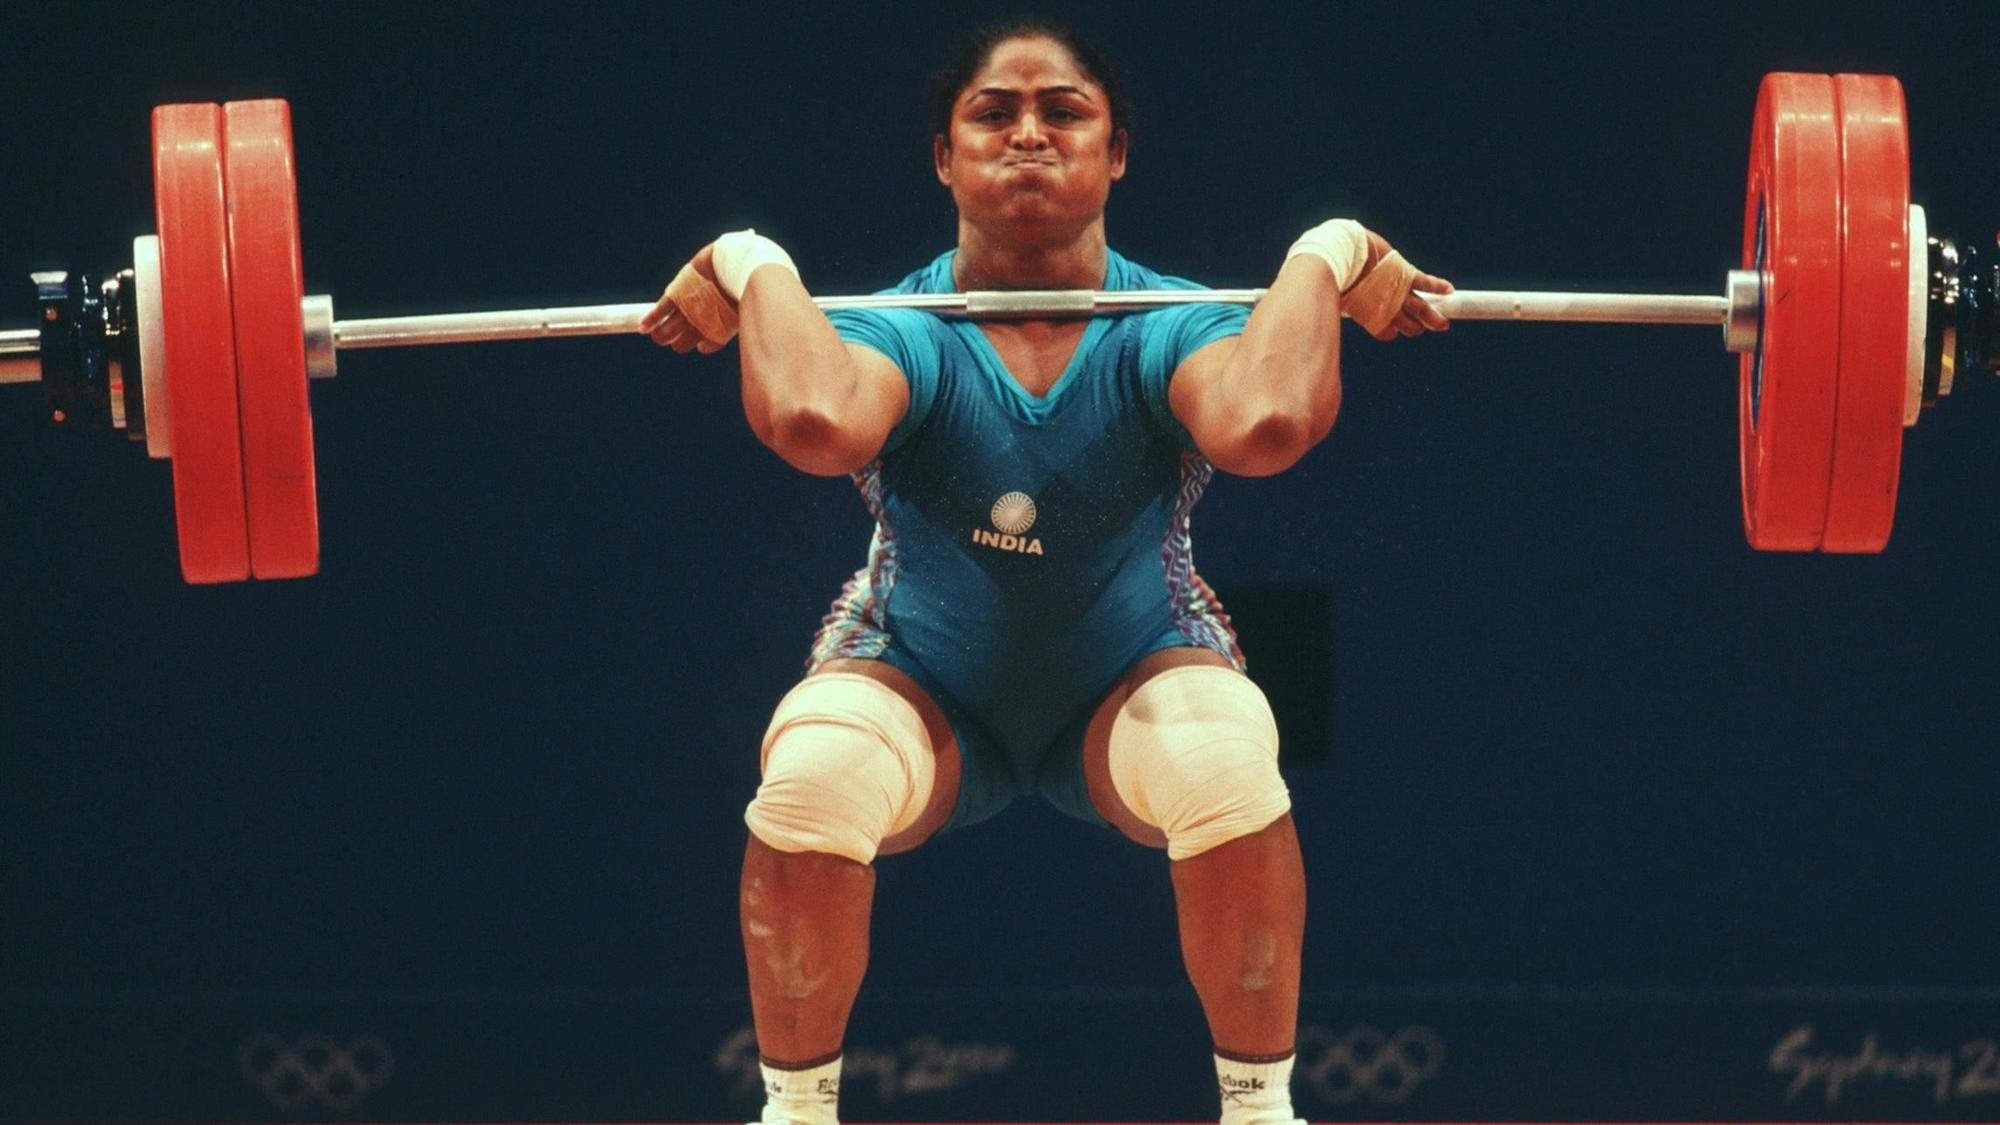 Weightlifter Karnam Malleswari, First Indian Woman To Win a Medal at the Olympics